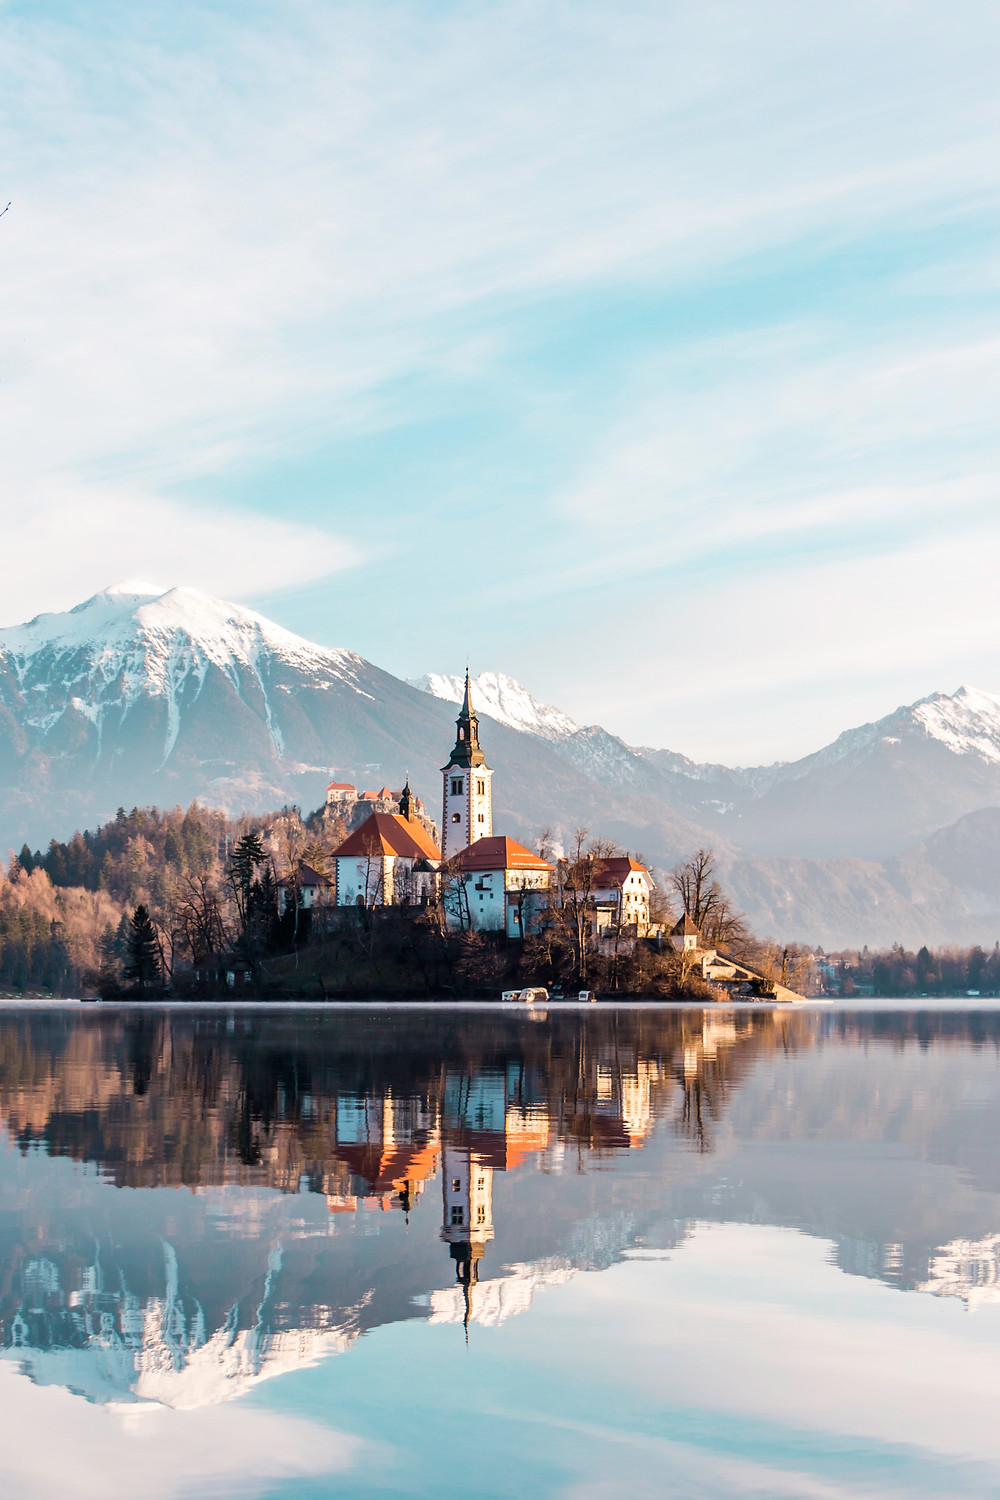 Slovenia with its snow-capped peaks, lovely green rivers and lakes was formerly a constituent of the republic of Yugoslavia